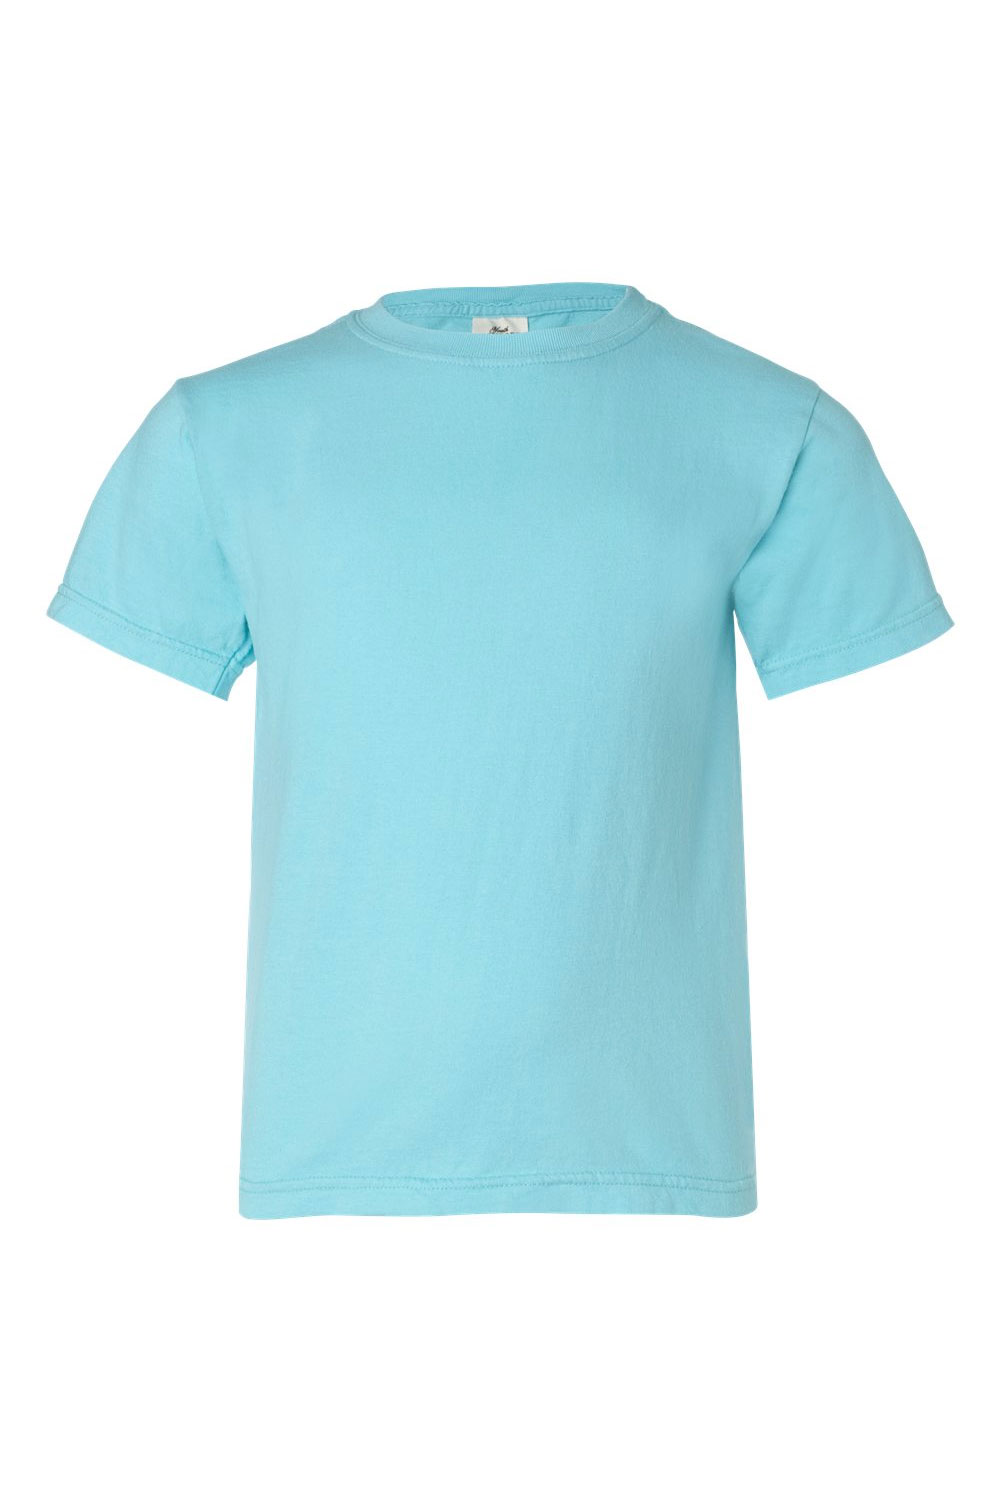 100% Pigment-Dyed Youth Tee